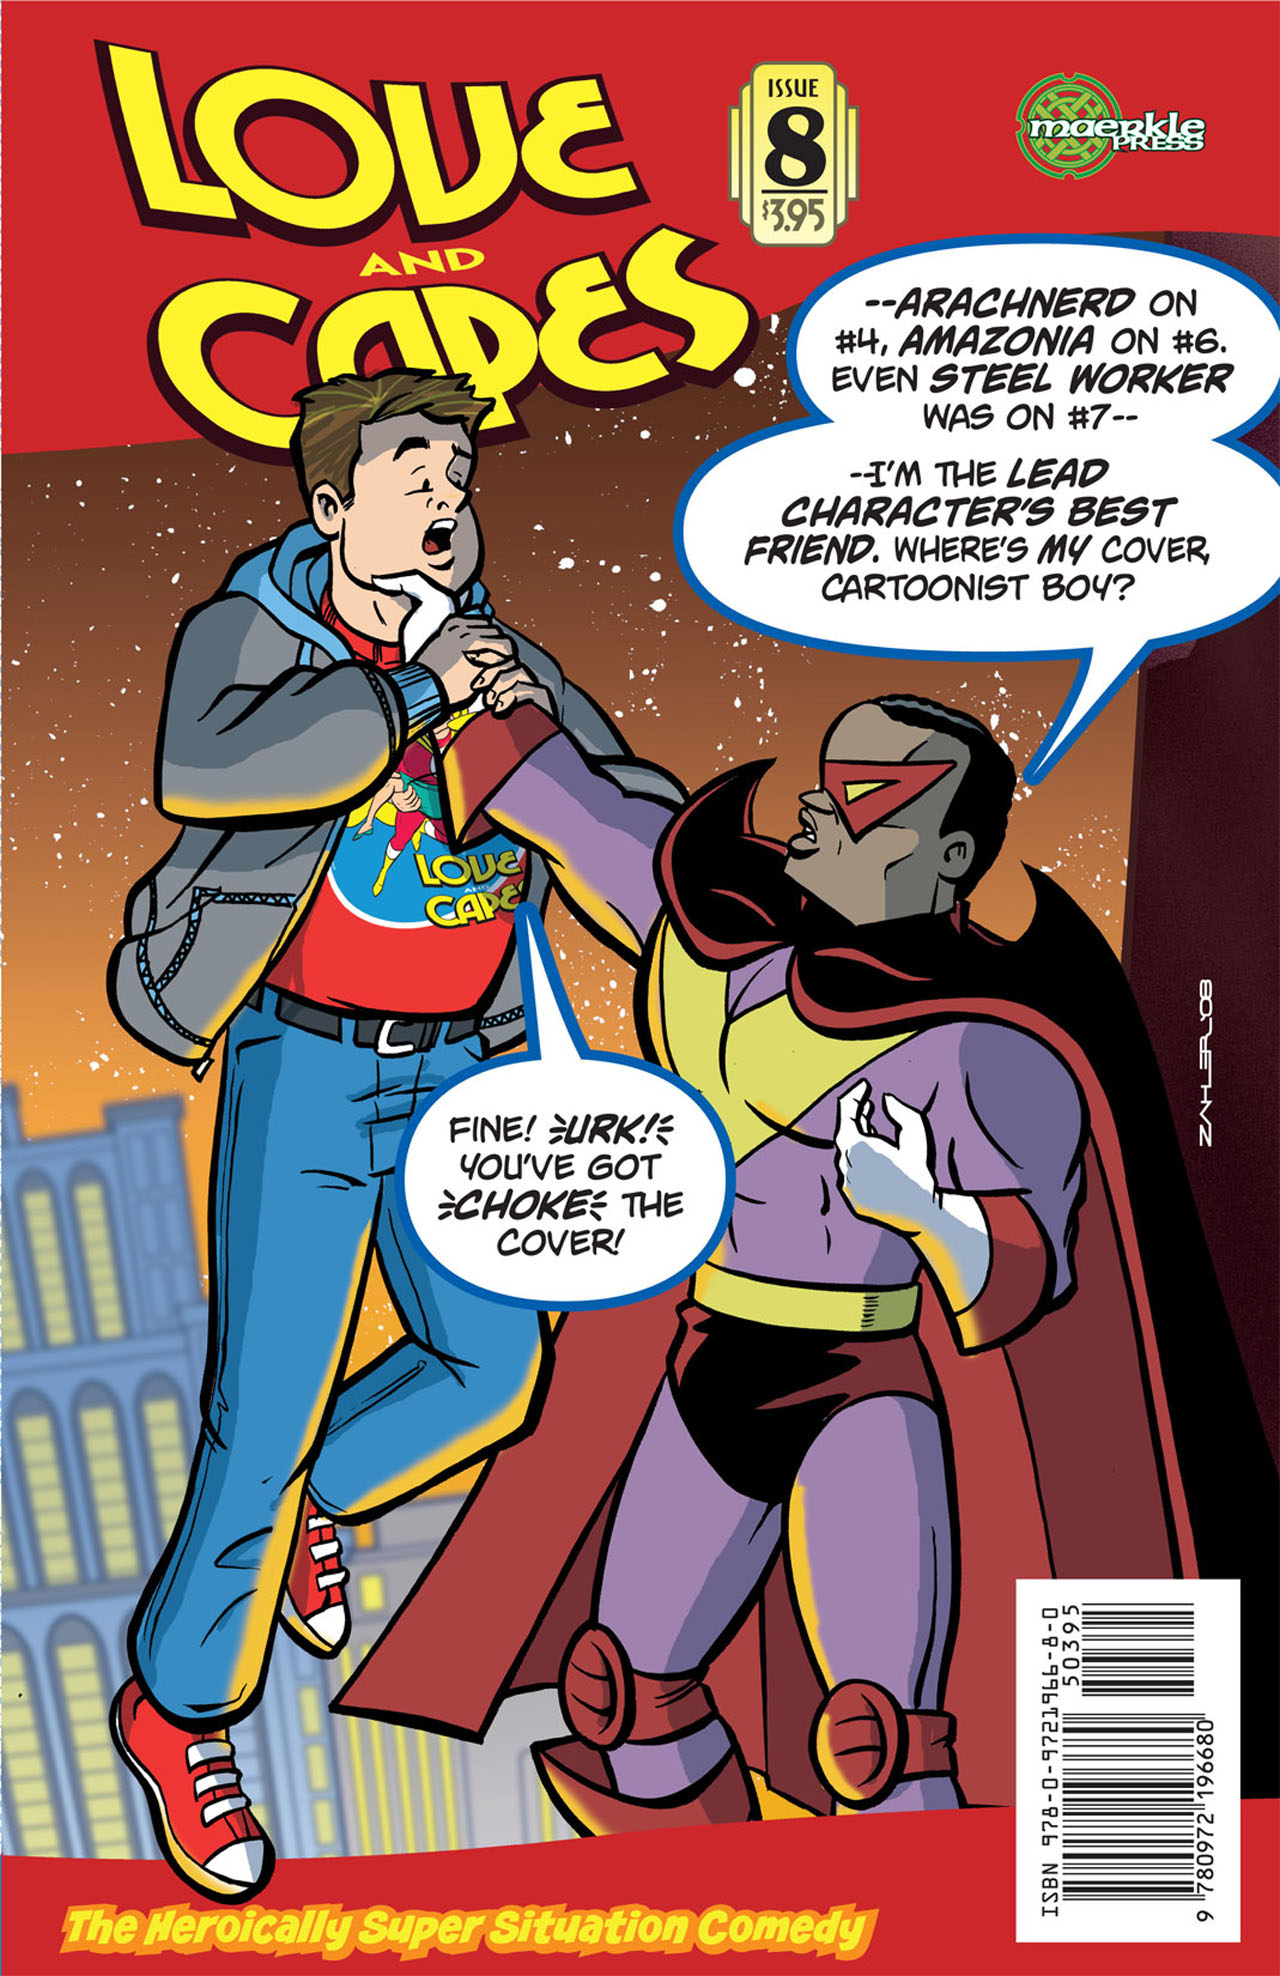 Love and Capes (2006) #8 by Thom Zahler.